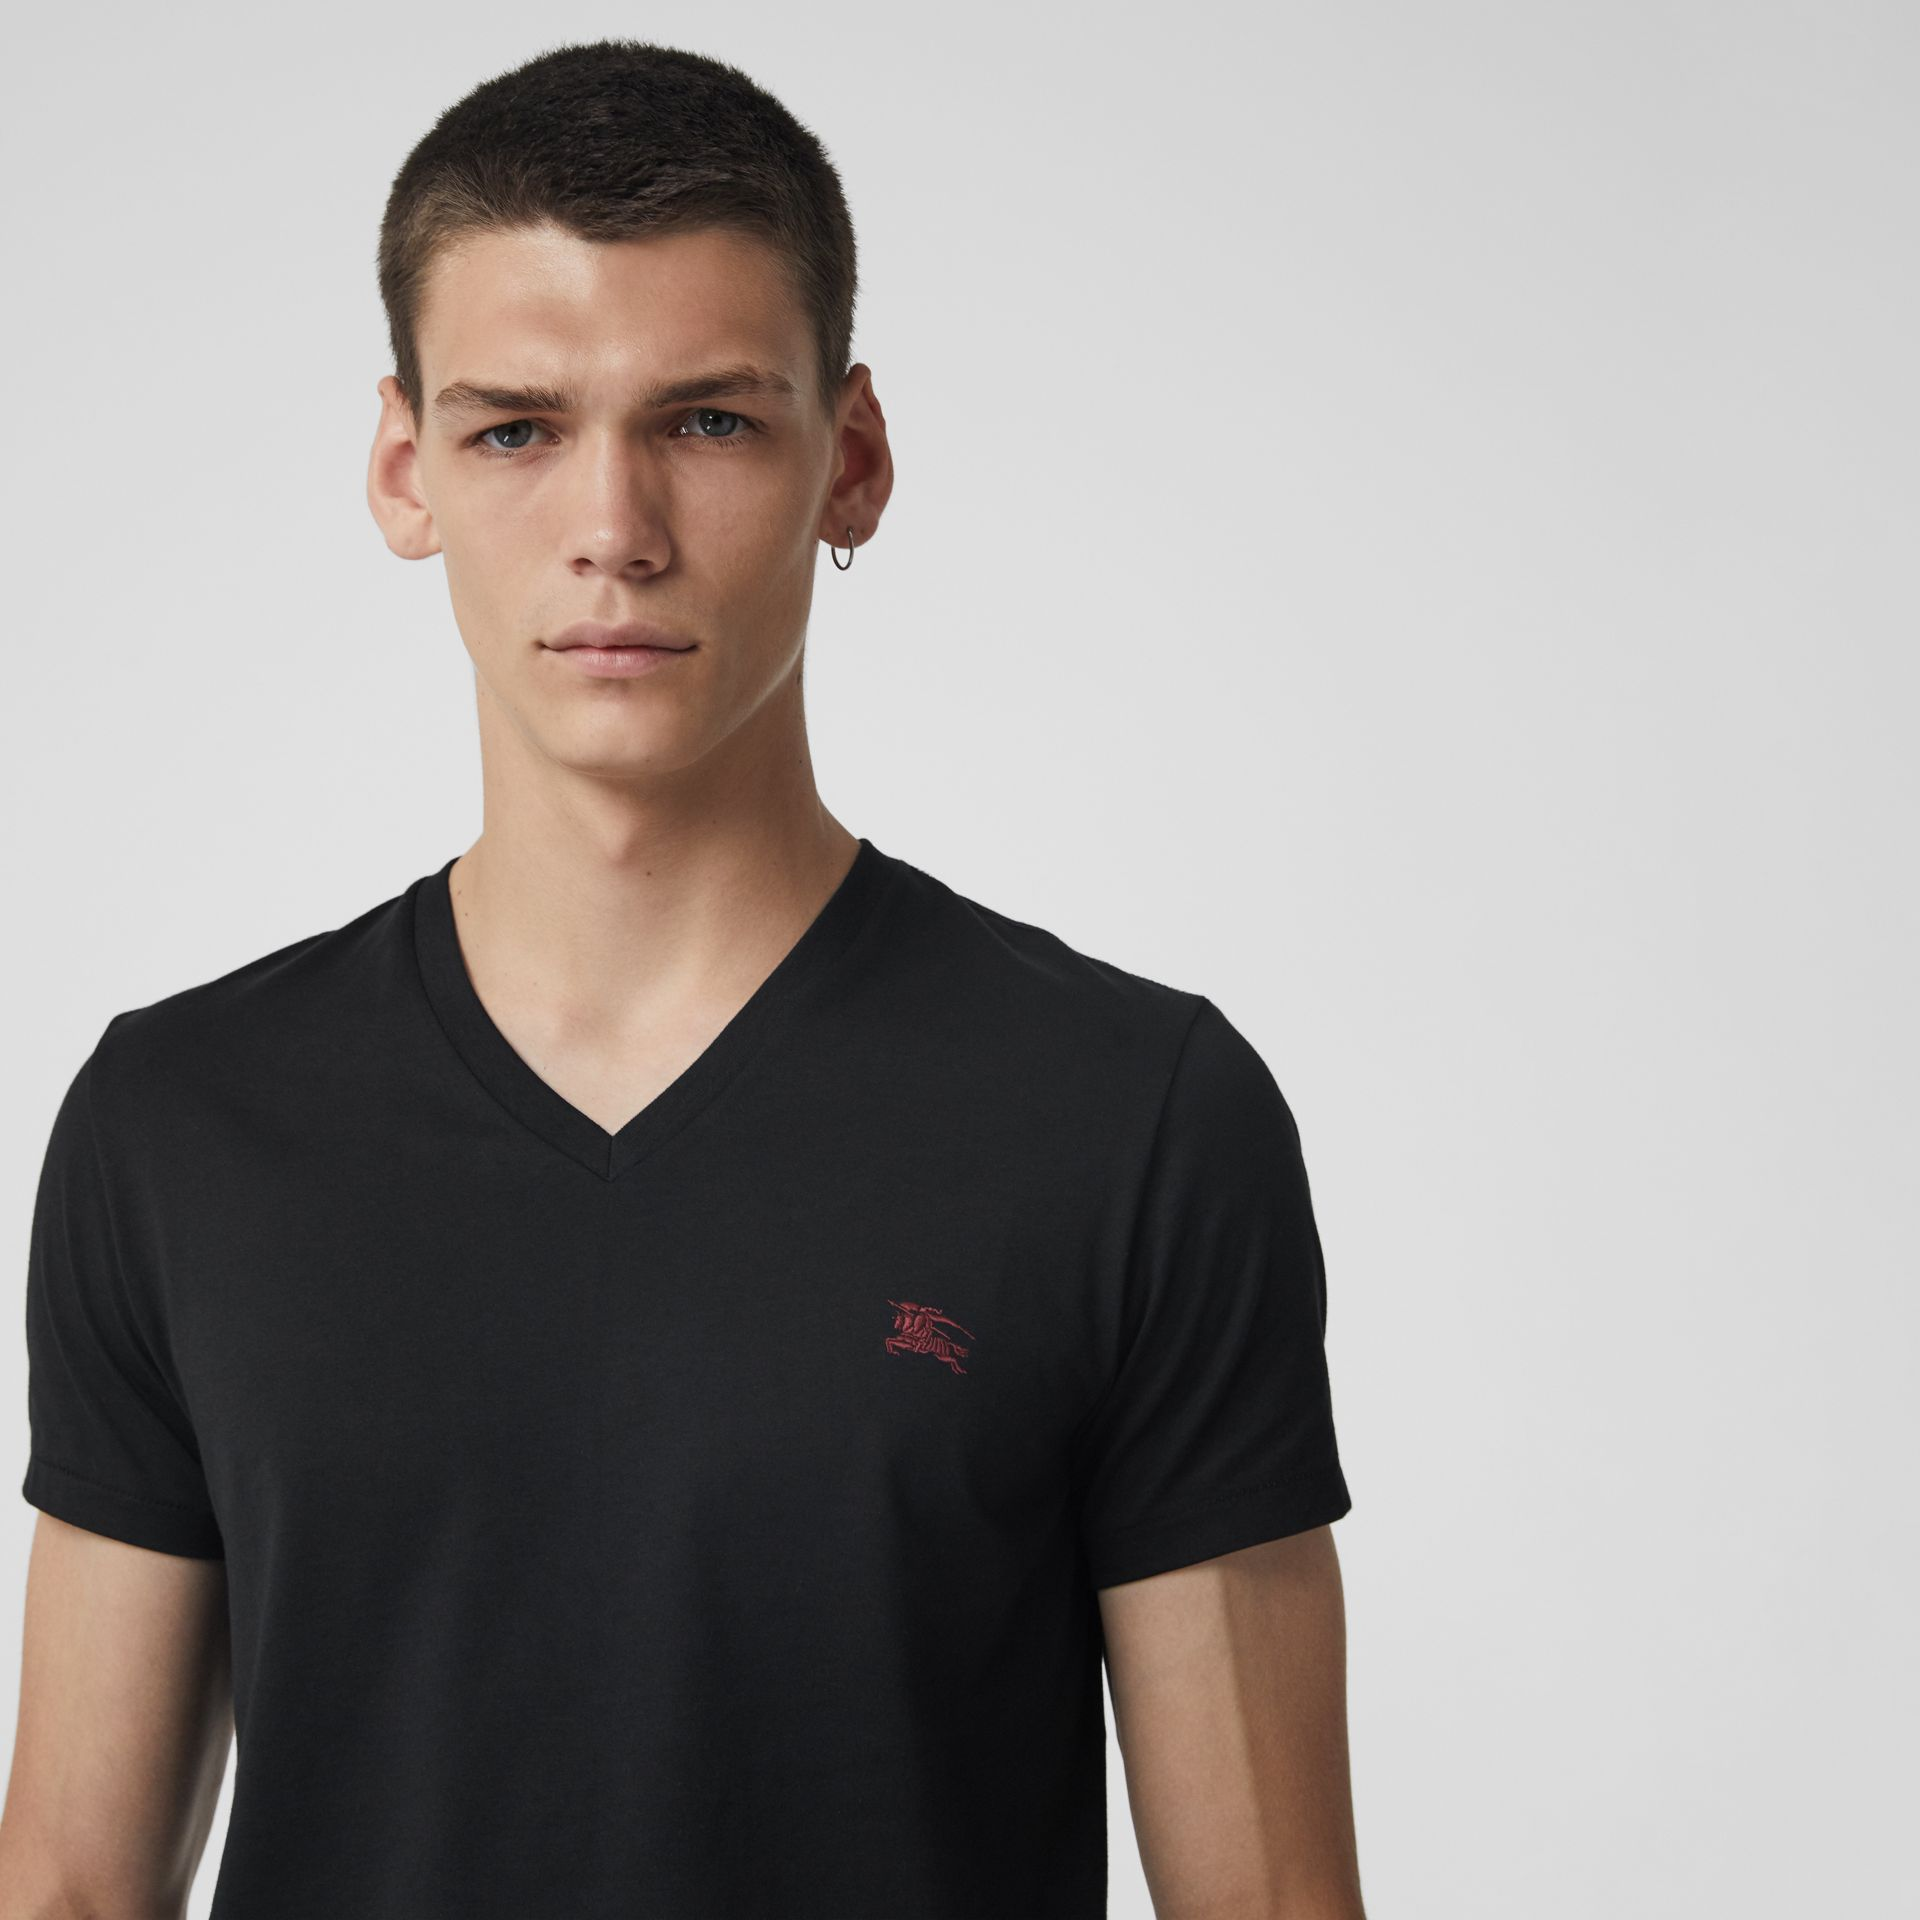 Cotton Jersey V-neck T-shirt in Black - Men | Burberry United Kingdom - gallery image 1